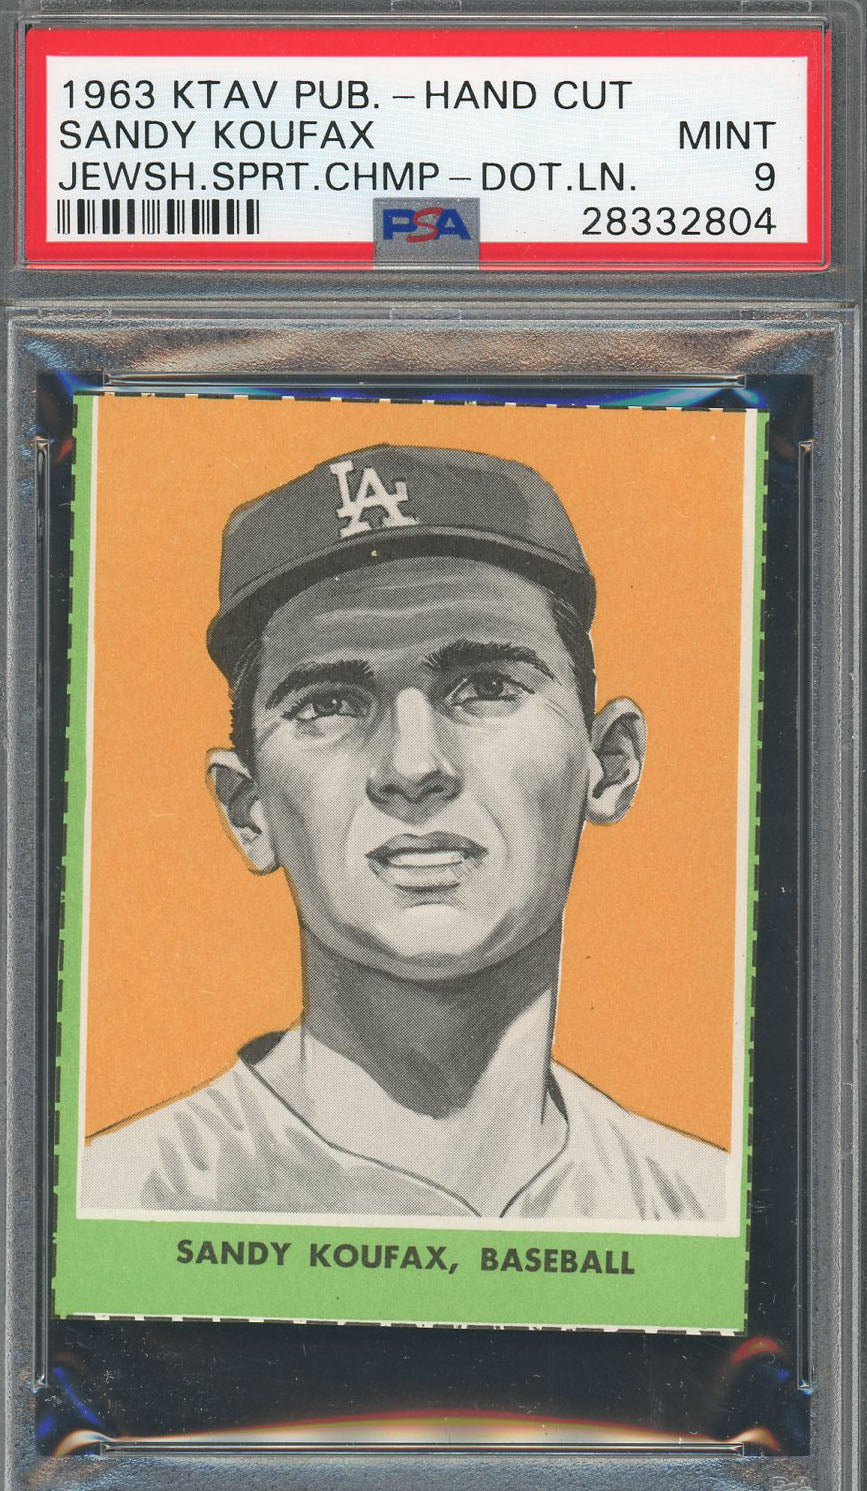 Sandy Koufax Los Angeles Dodgers 1963 Ktav Pub Hand Cut Baseball Card Graded PSA 9 MINT-Powers Sports Memorabilia